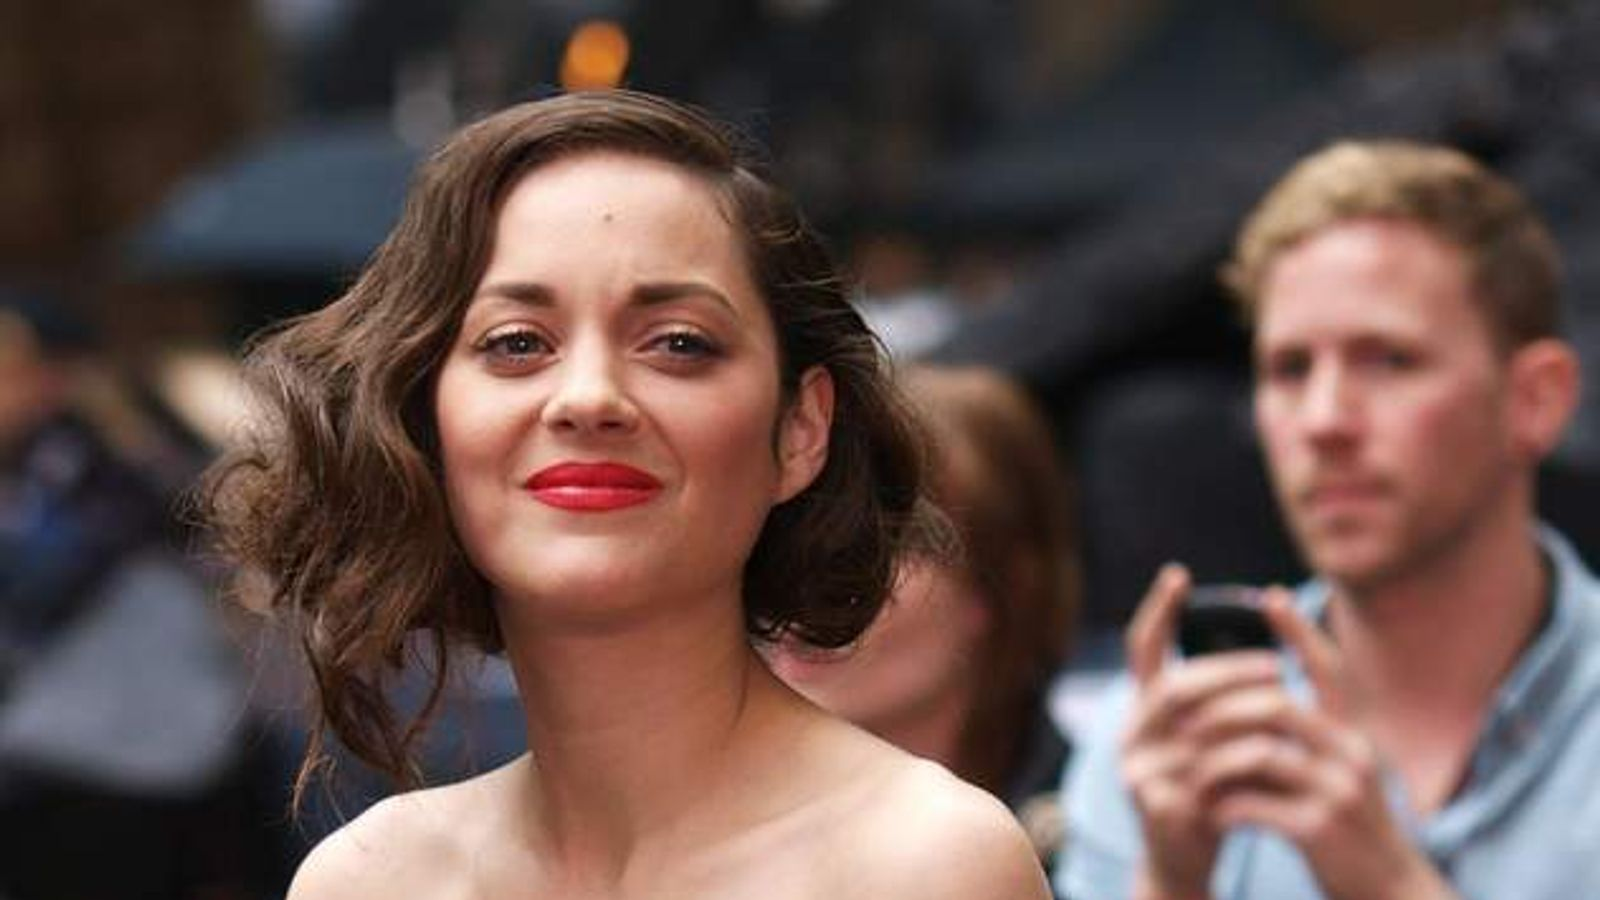 Marion Cotillard July 2012